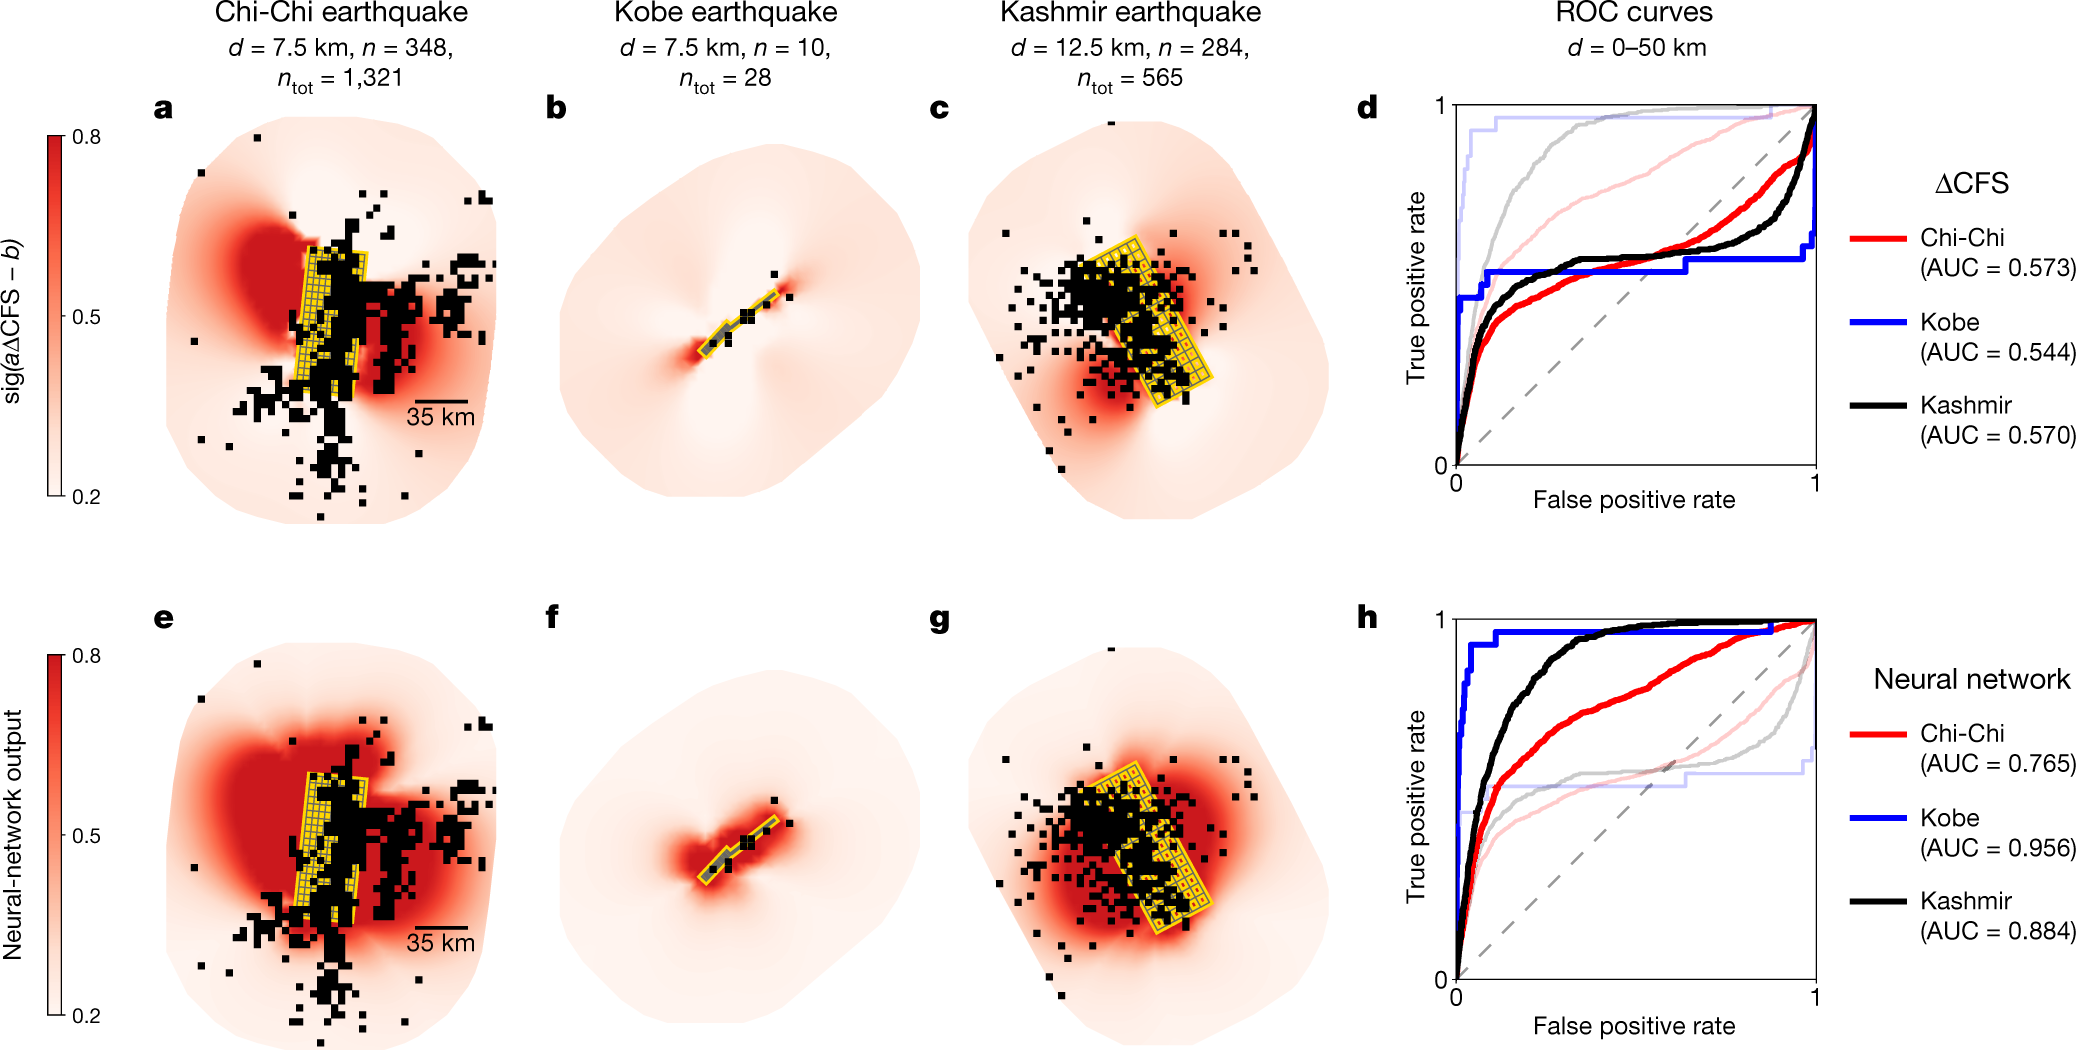 Deep learning of aftershock patterns following large